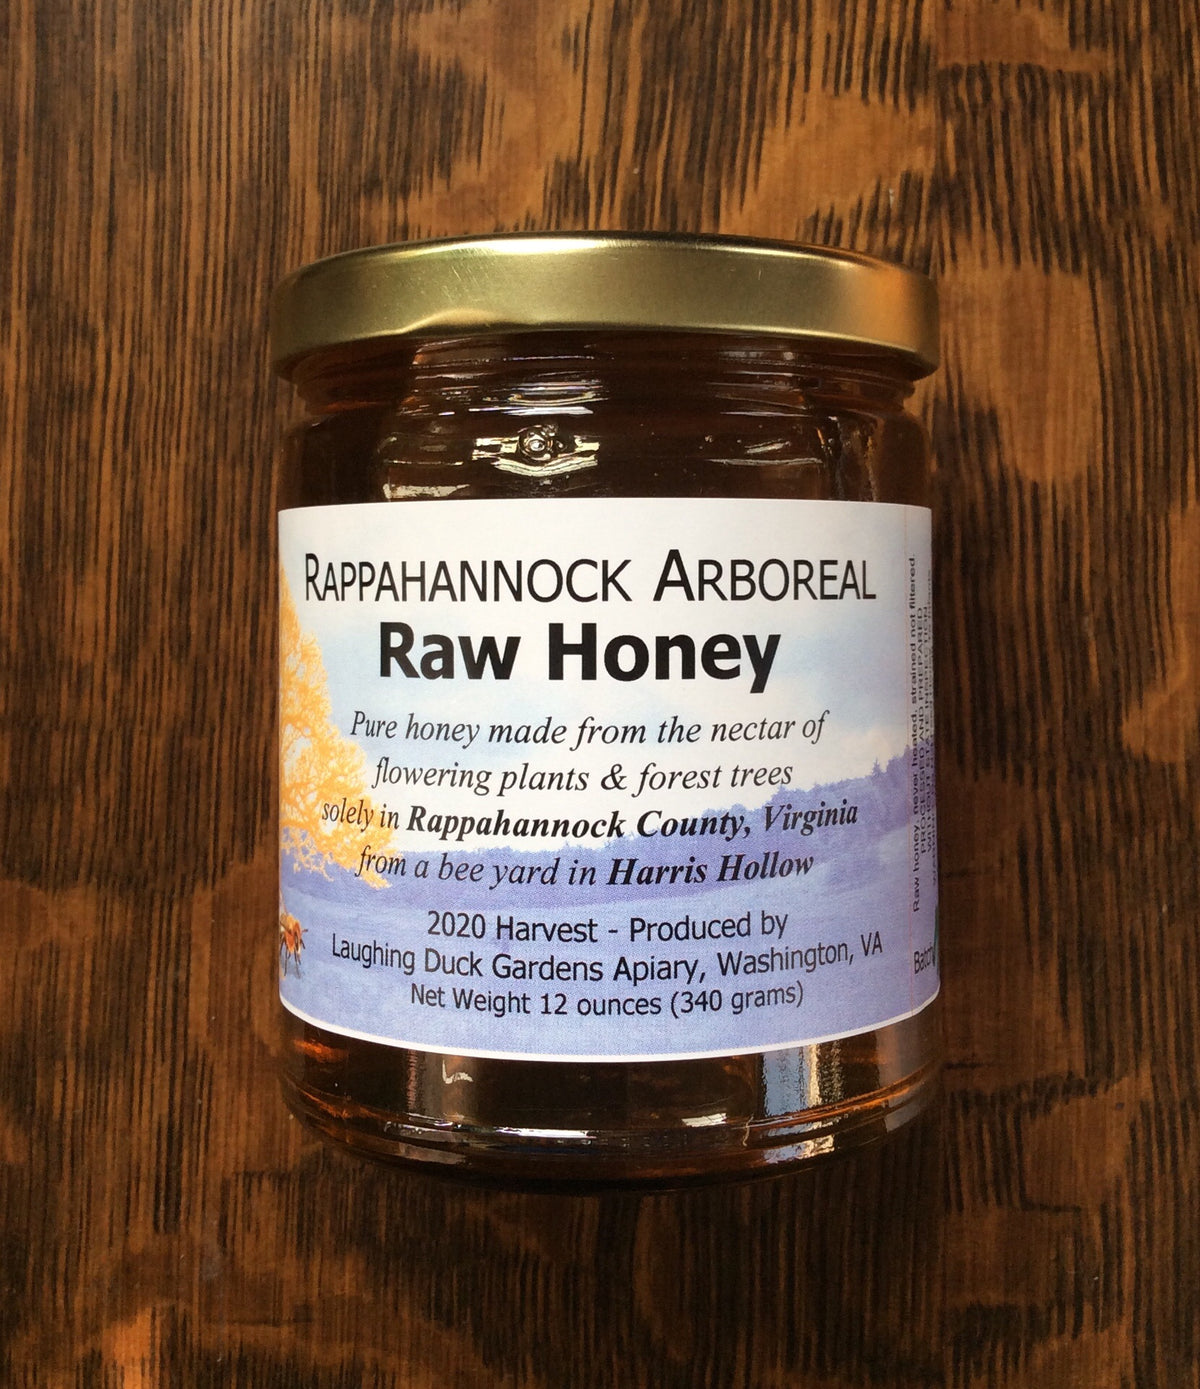 Rappahannock Arboreal Raw Honey by Laughing Duck Gardens Apiary